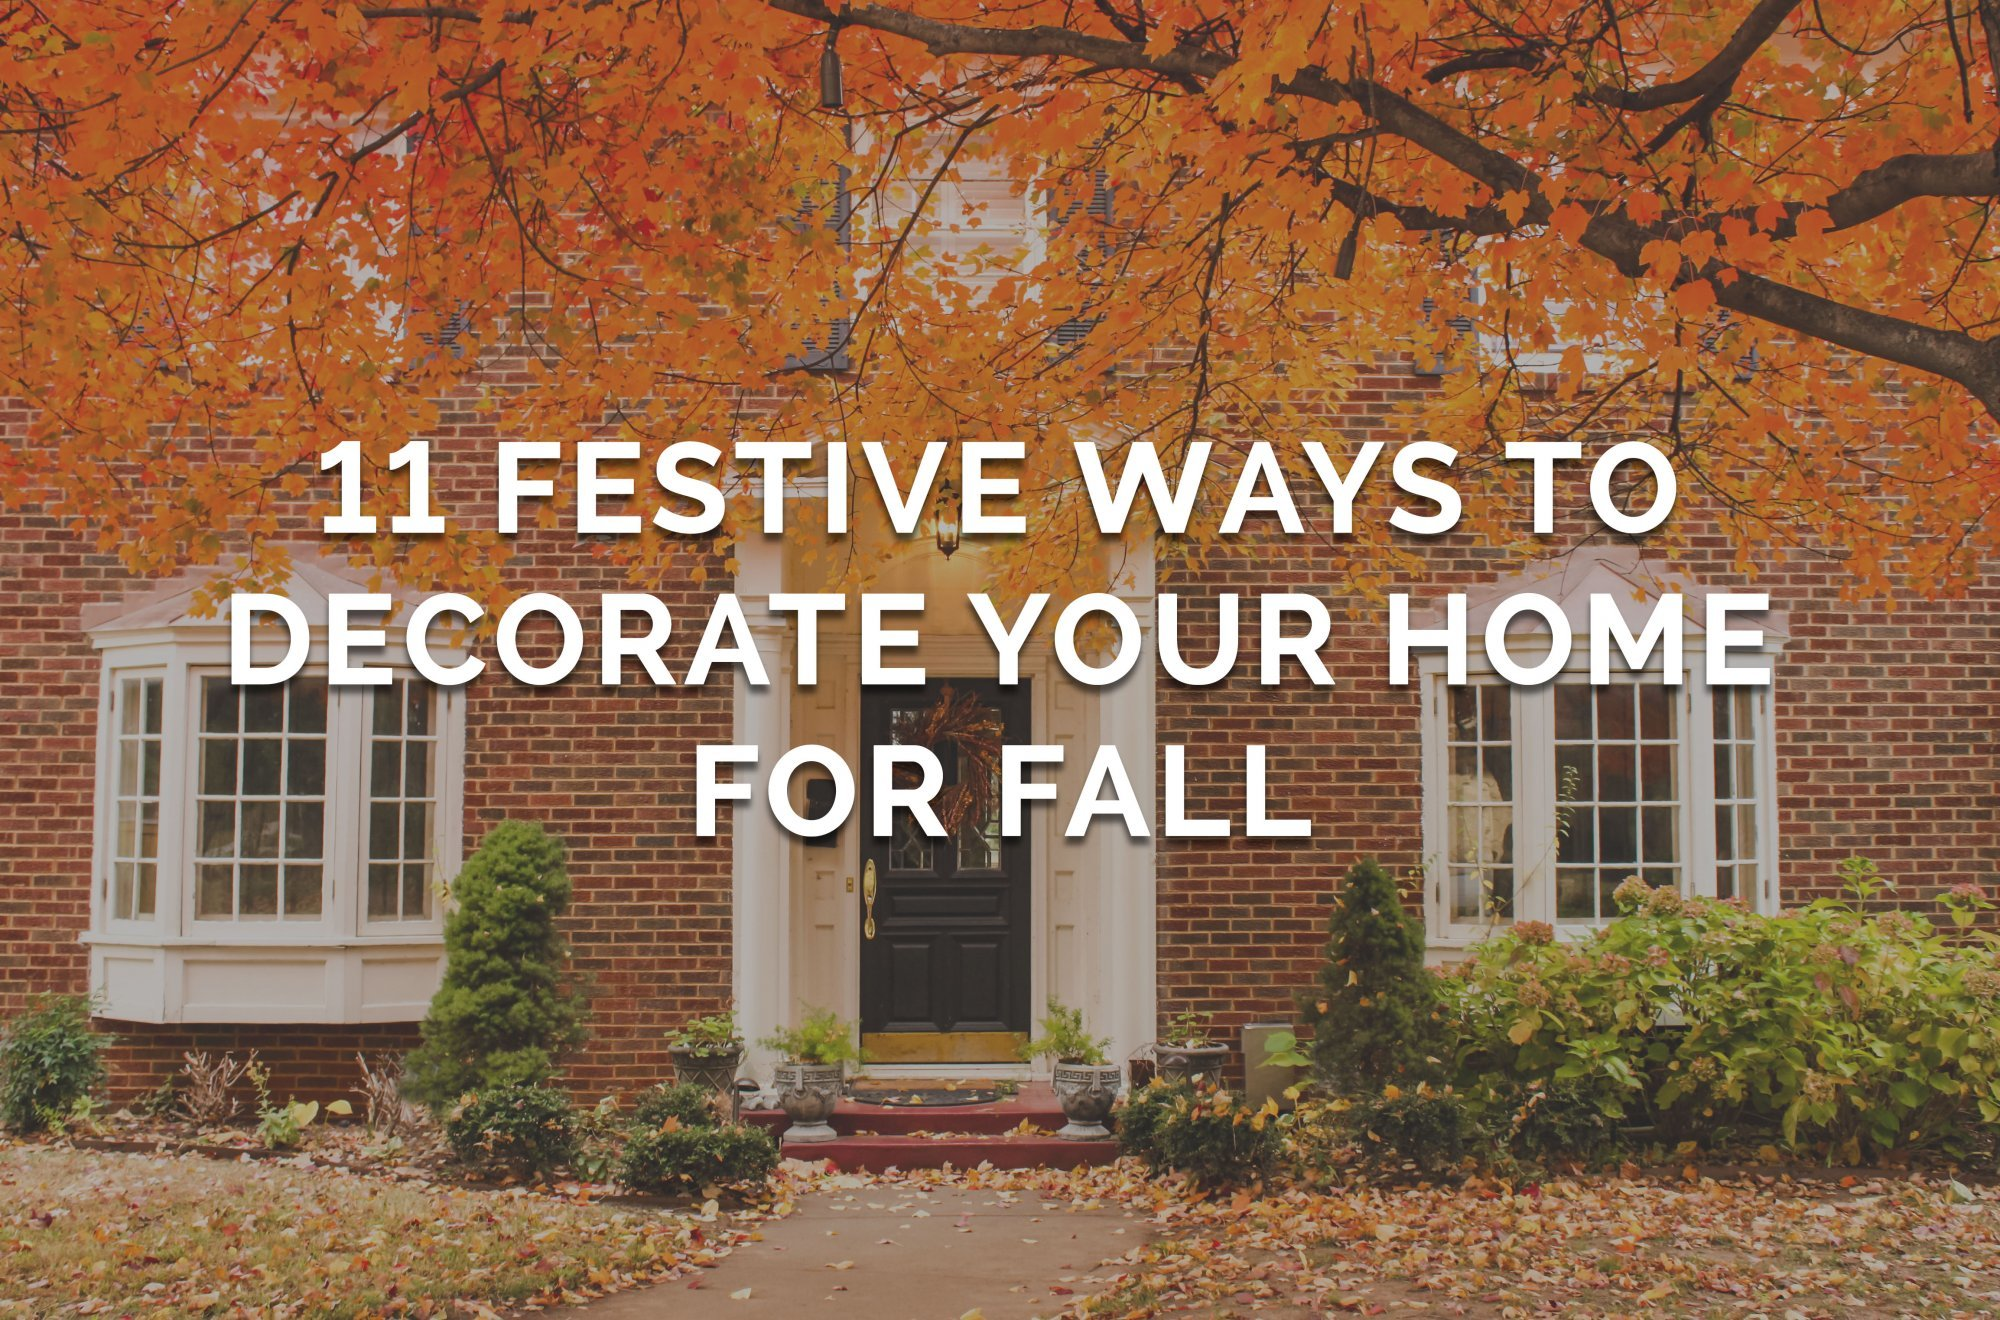 11 Festive Ways to Decorate Your Home for Fall